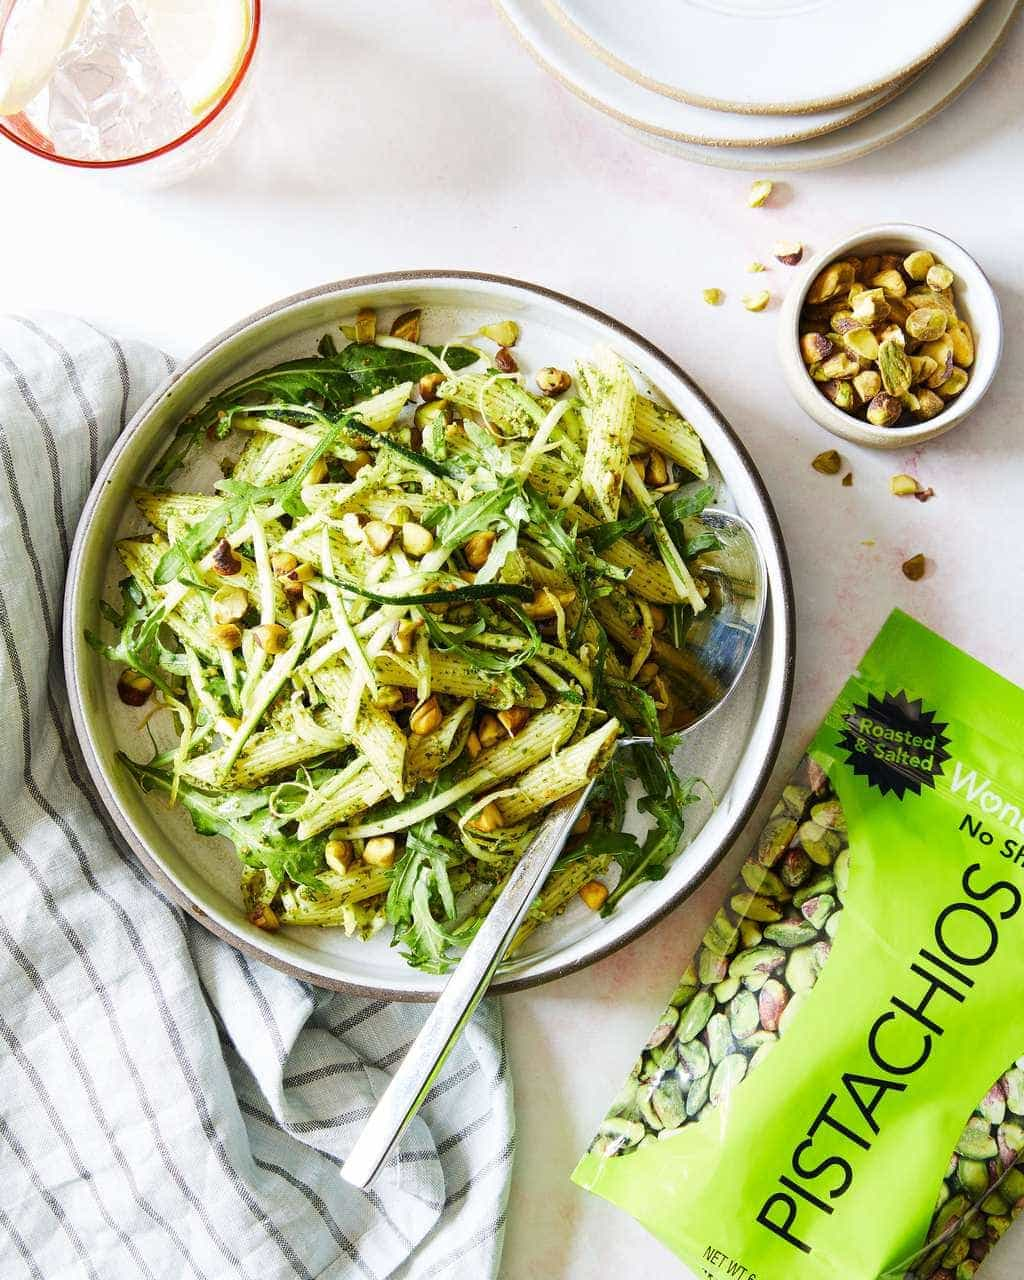 Bowl of pistachio pesto pasta with bag of green pistachios